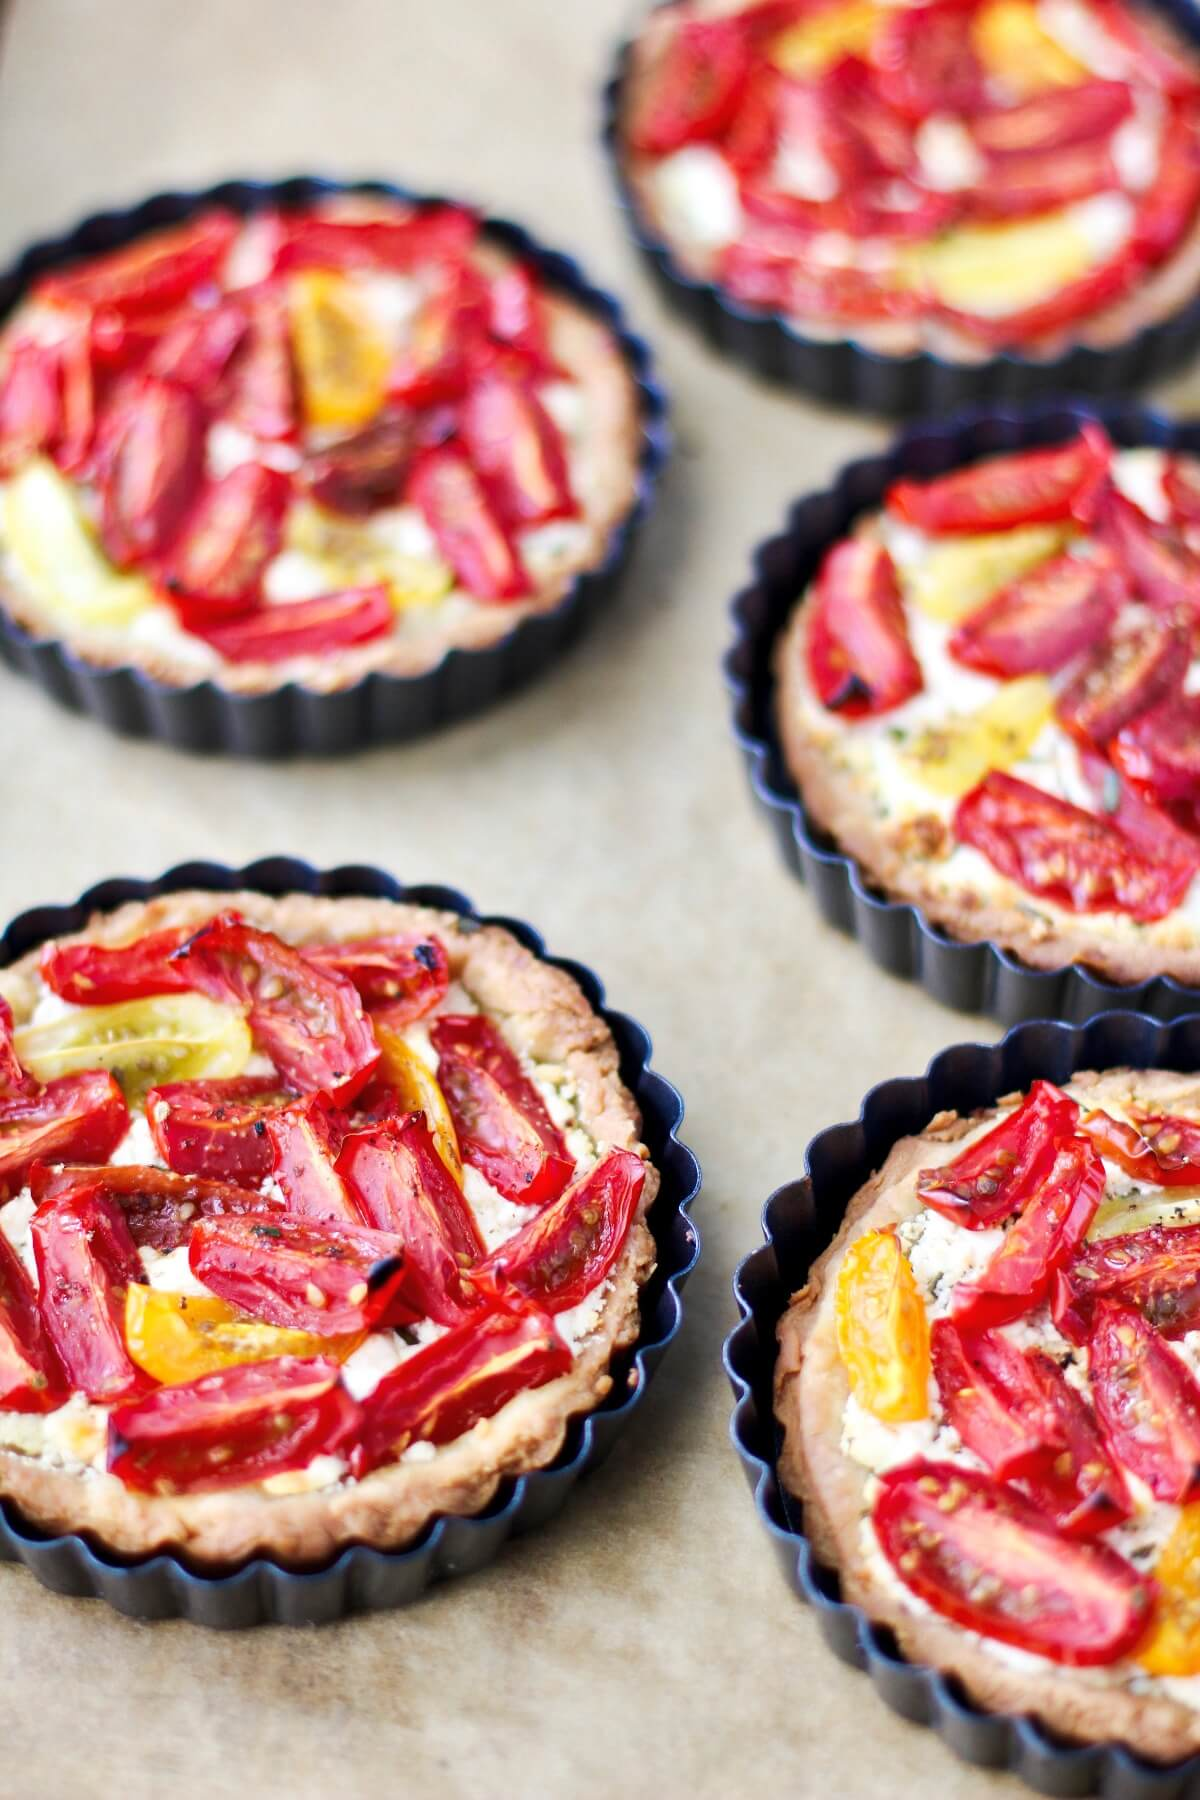 Tomato and Goat Cheese Tarts in tart pans.